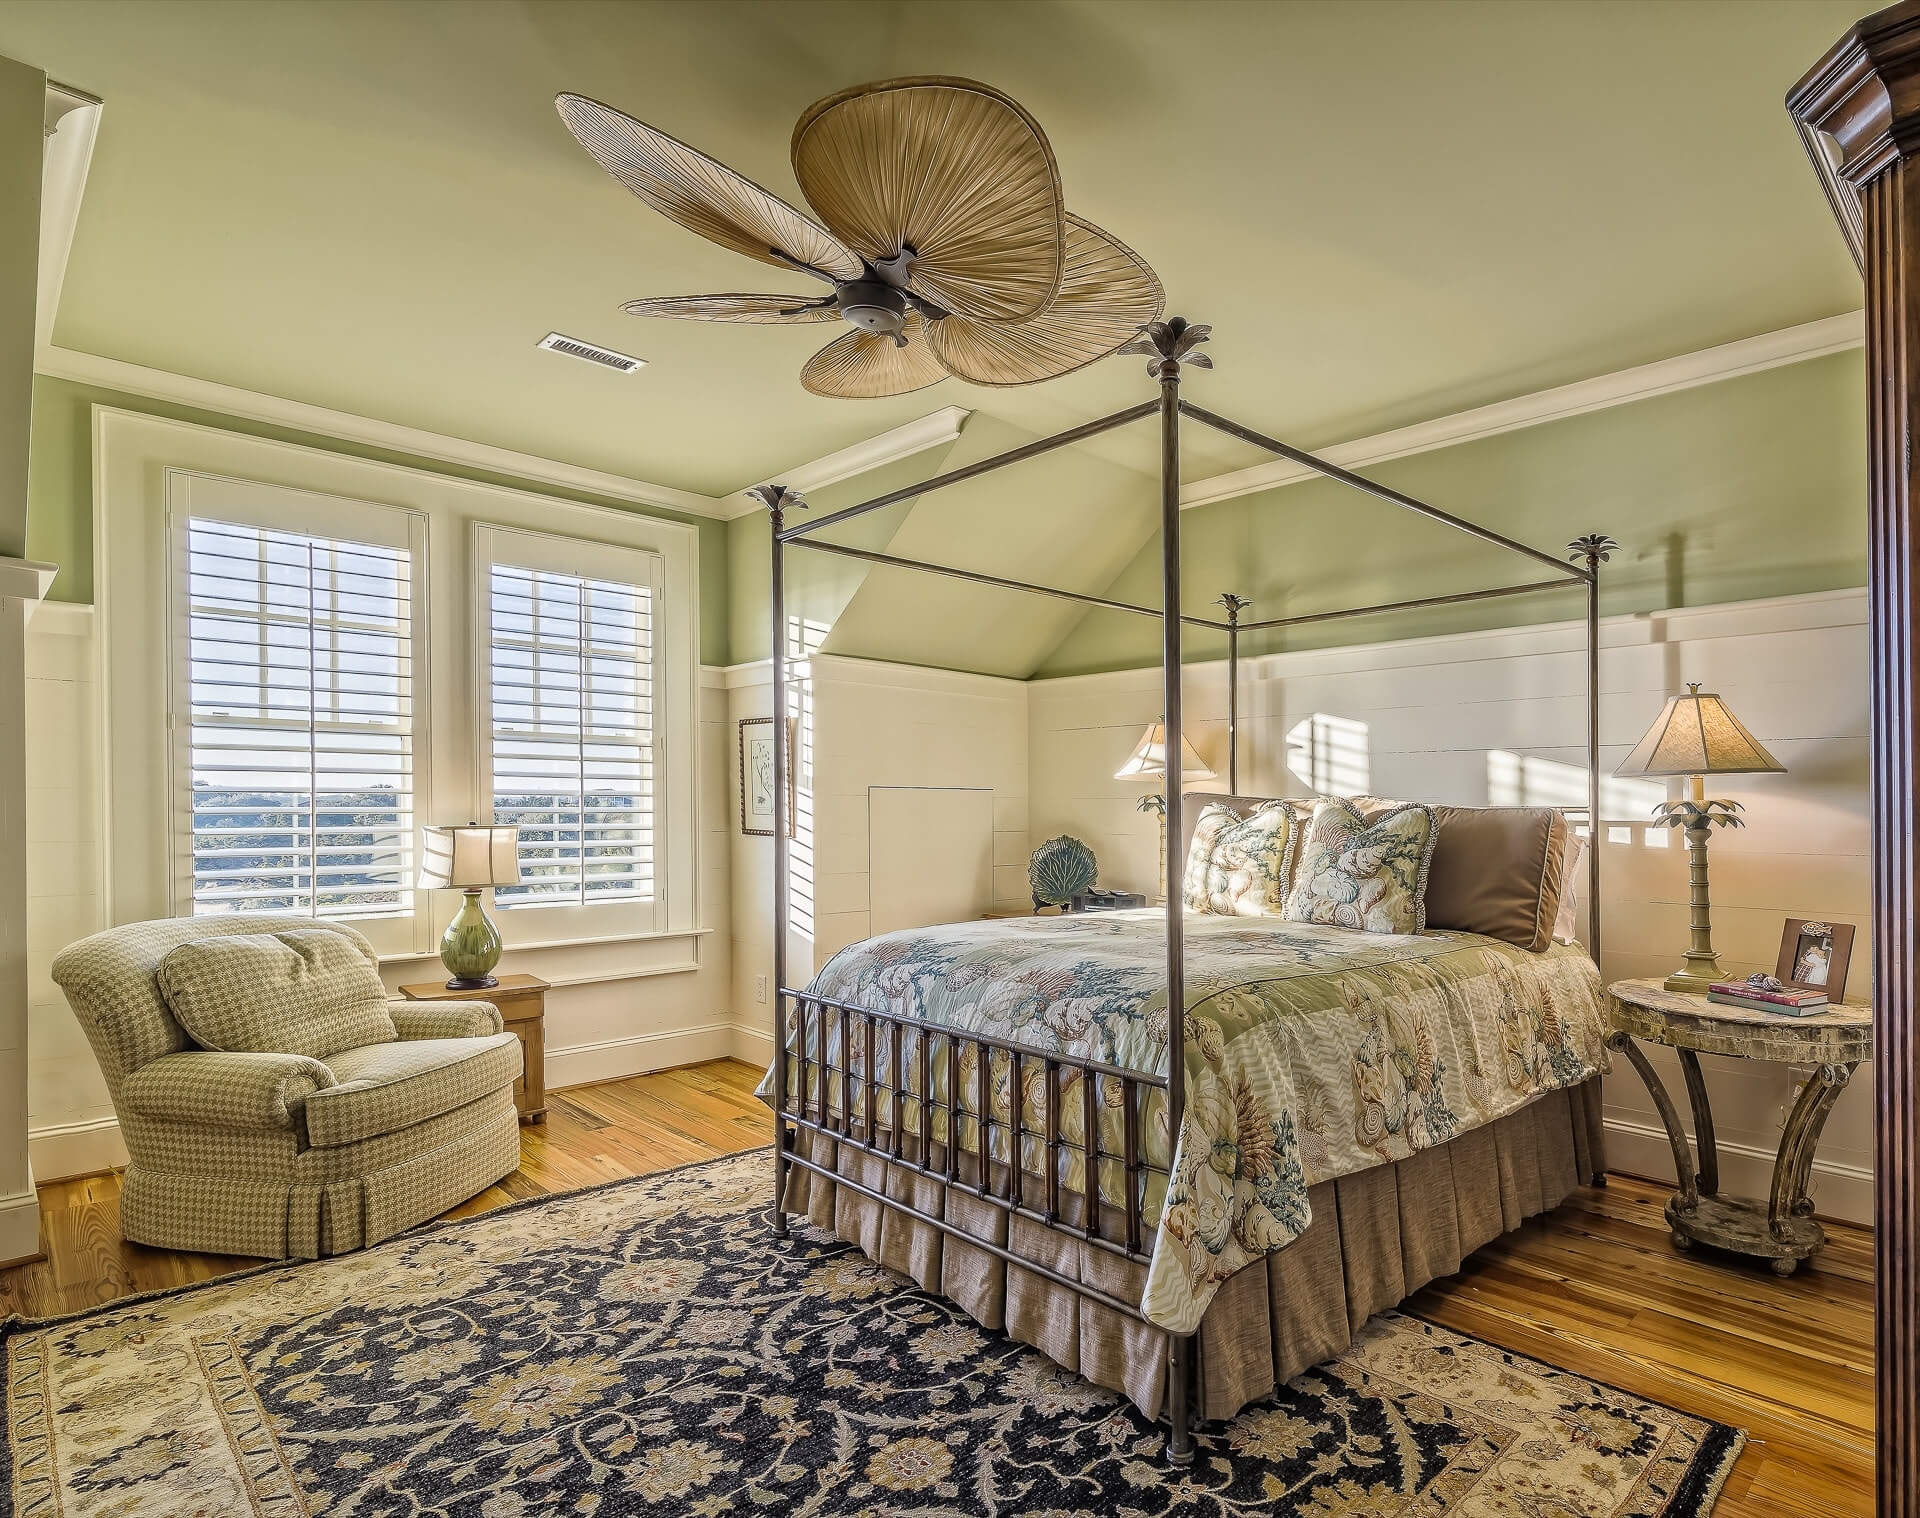 Who Says That You Can't Find New Construction in Gwinnett Under $250,000?